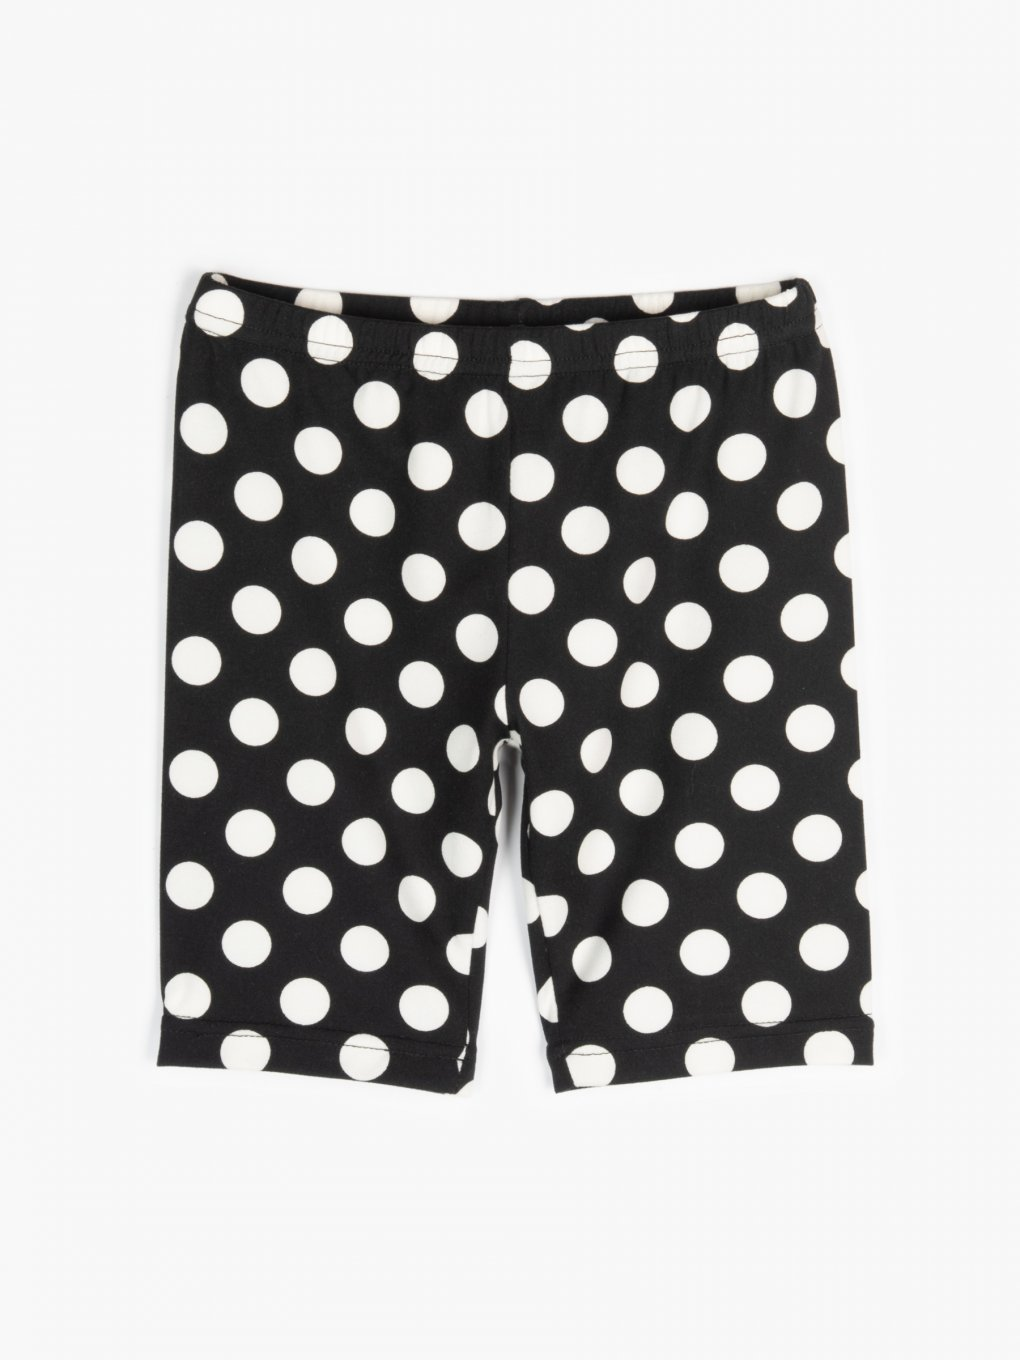 Polka dot cycling shorts